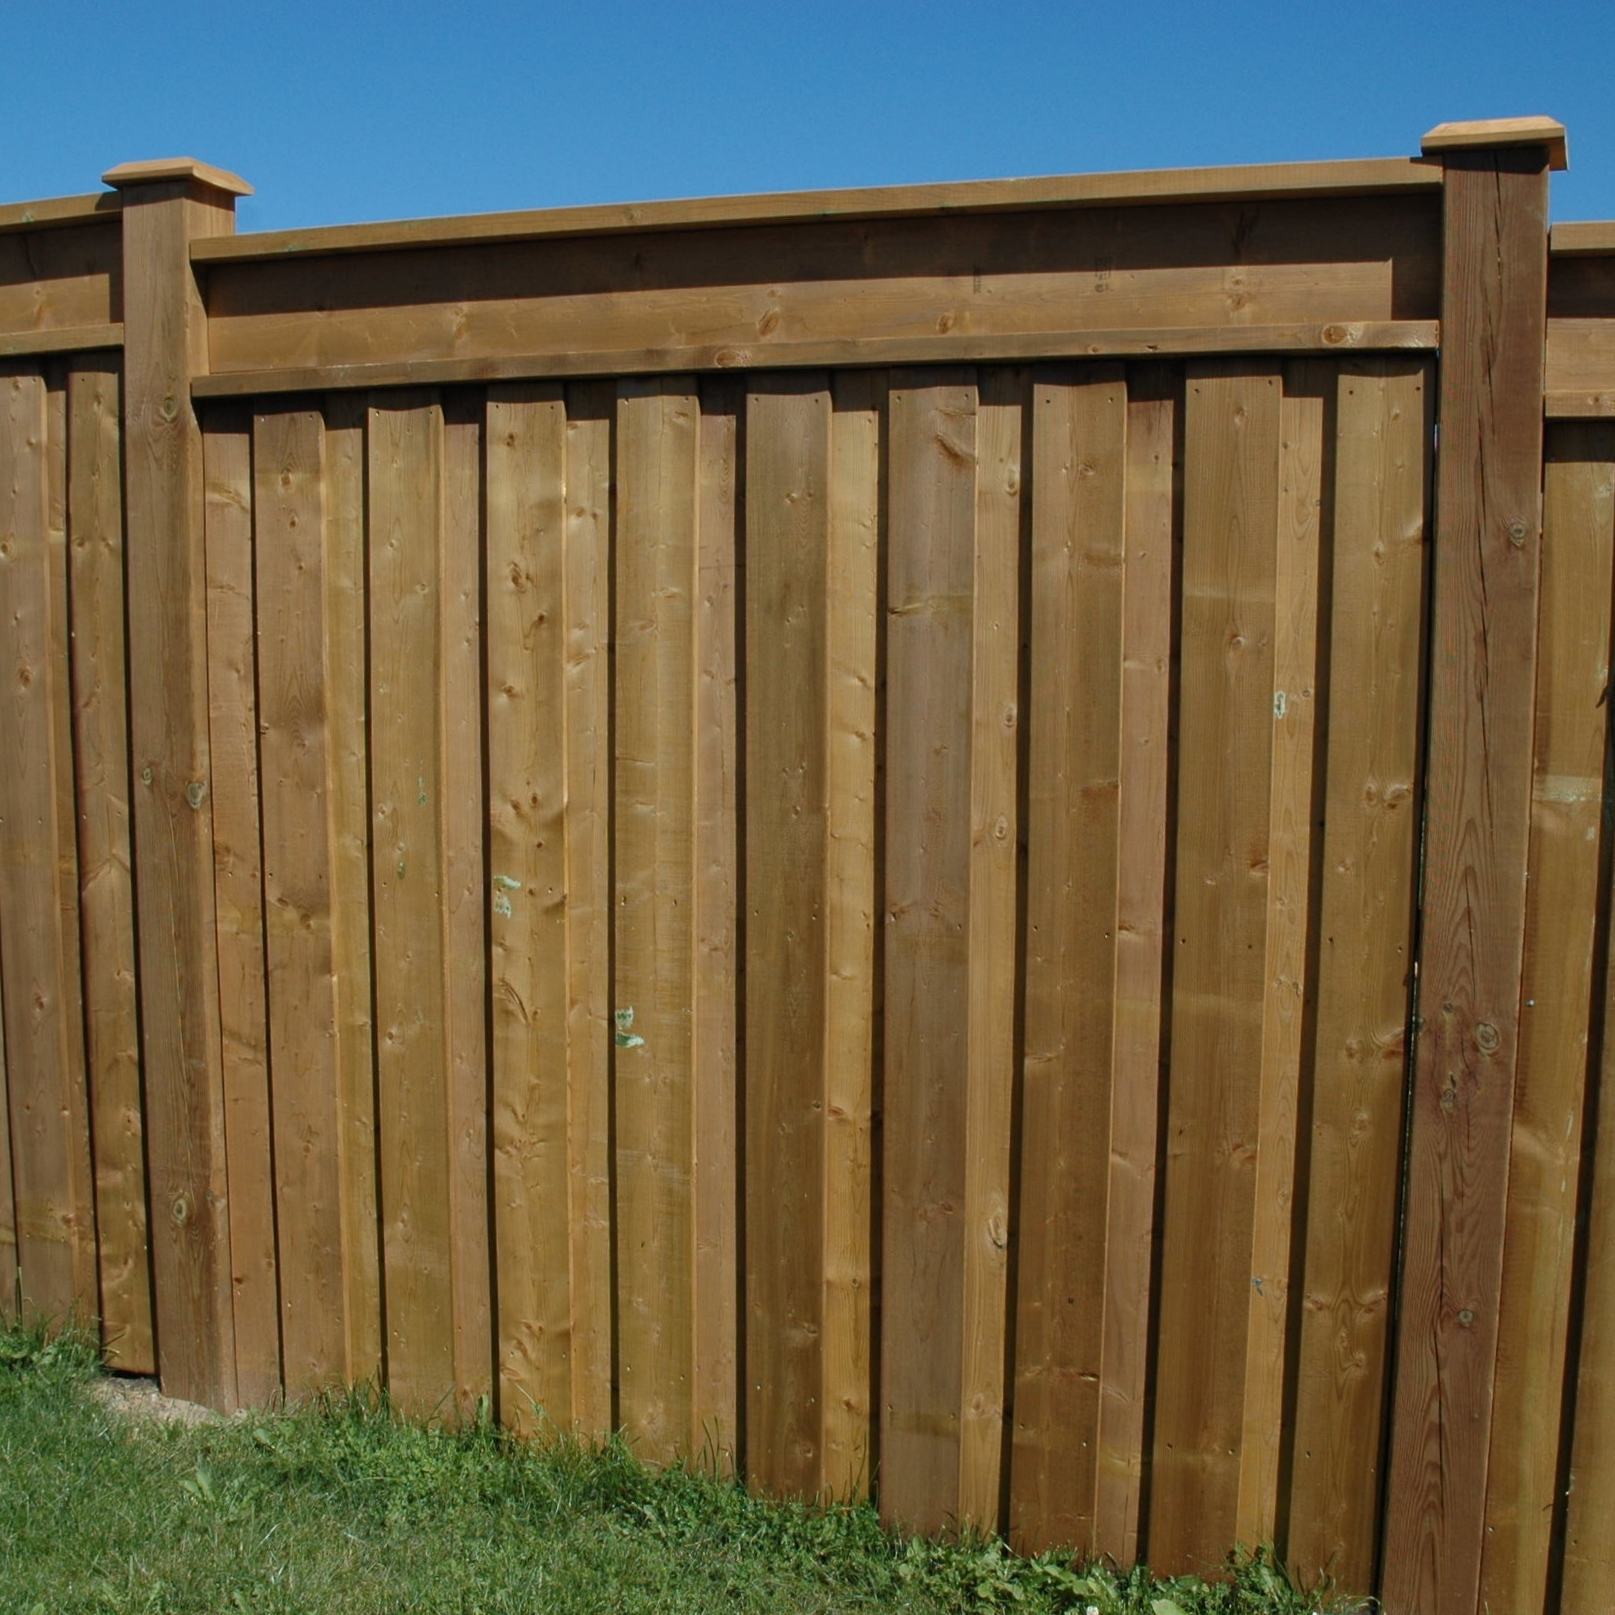 Wood Fencing — Heritage Design - The Deck and Fence Store